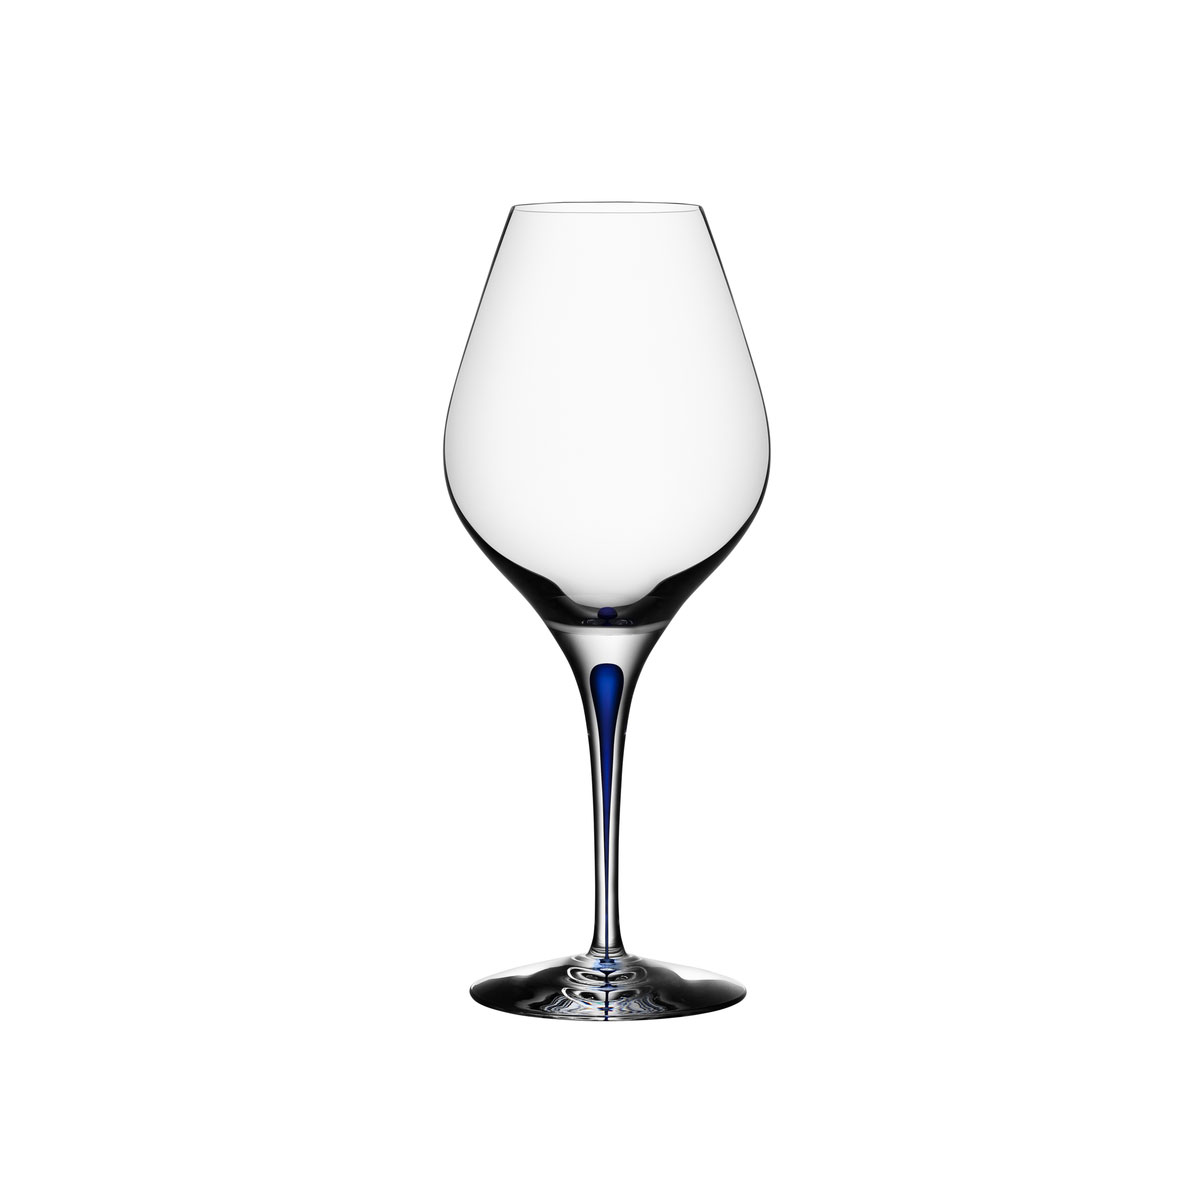 Orrefors Crystal, Intermezzo Blue Aromas Crystal Wine, Single